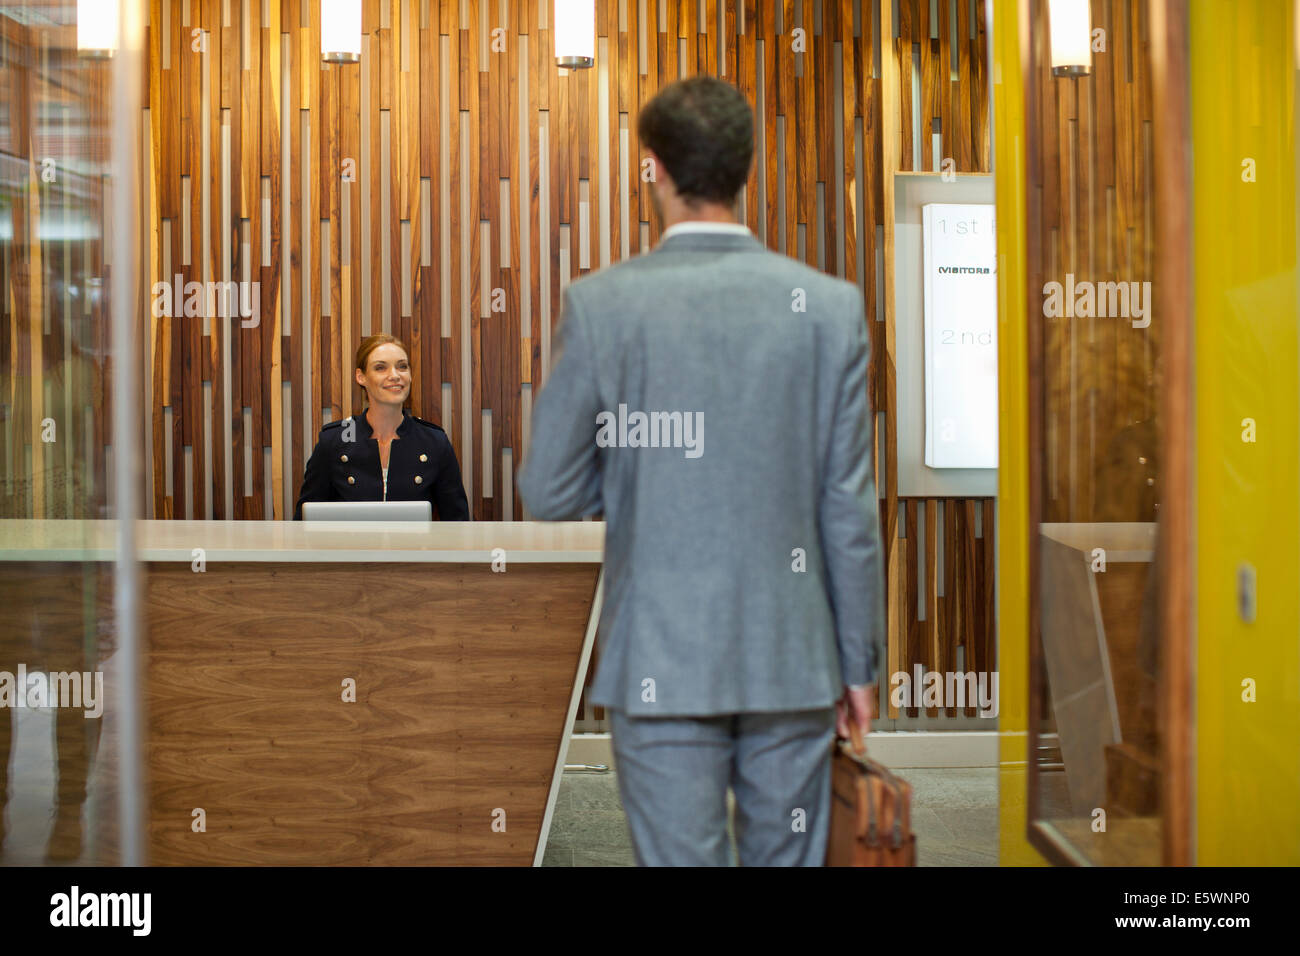 Businessman arriving at office reception - Stock Image